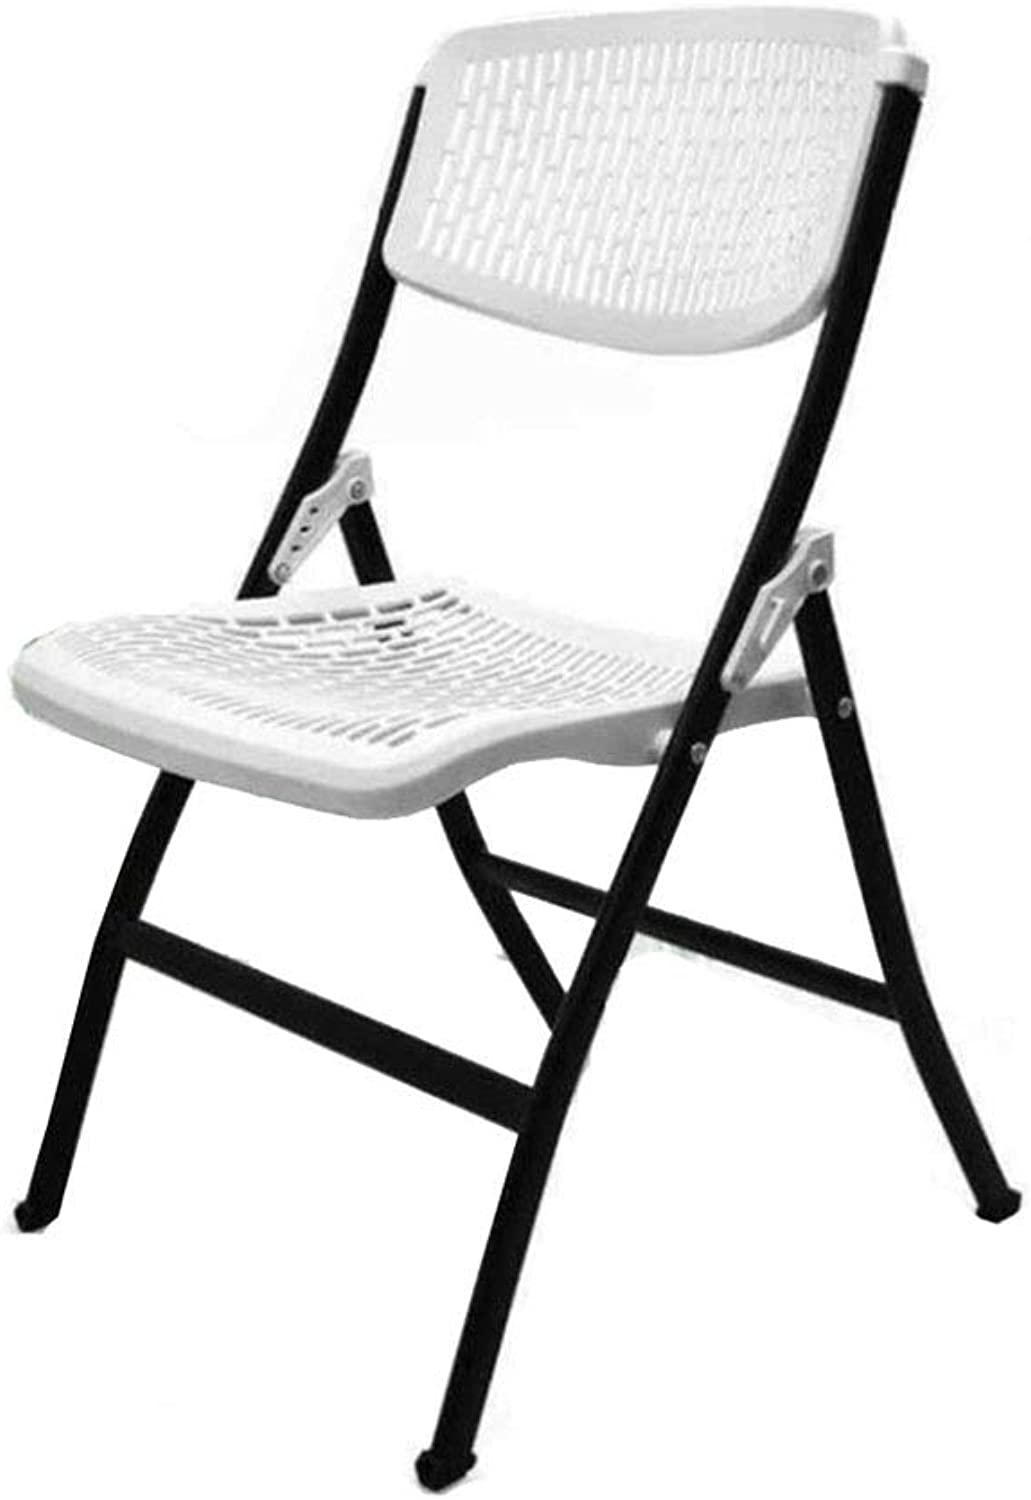 LGQ-LIFE Multifunctional Plastic Folding Chair, Suitable for Home Office Conference Chair Computer Portable Training Chair Folding Stool (color   White)